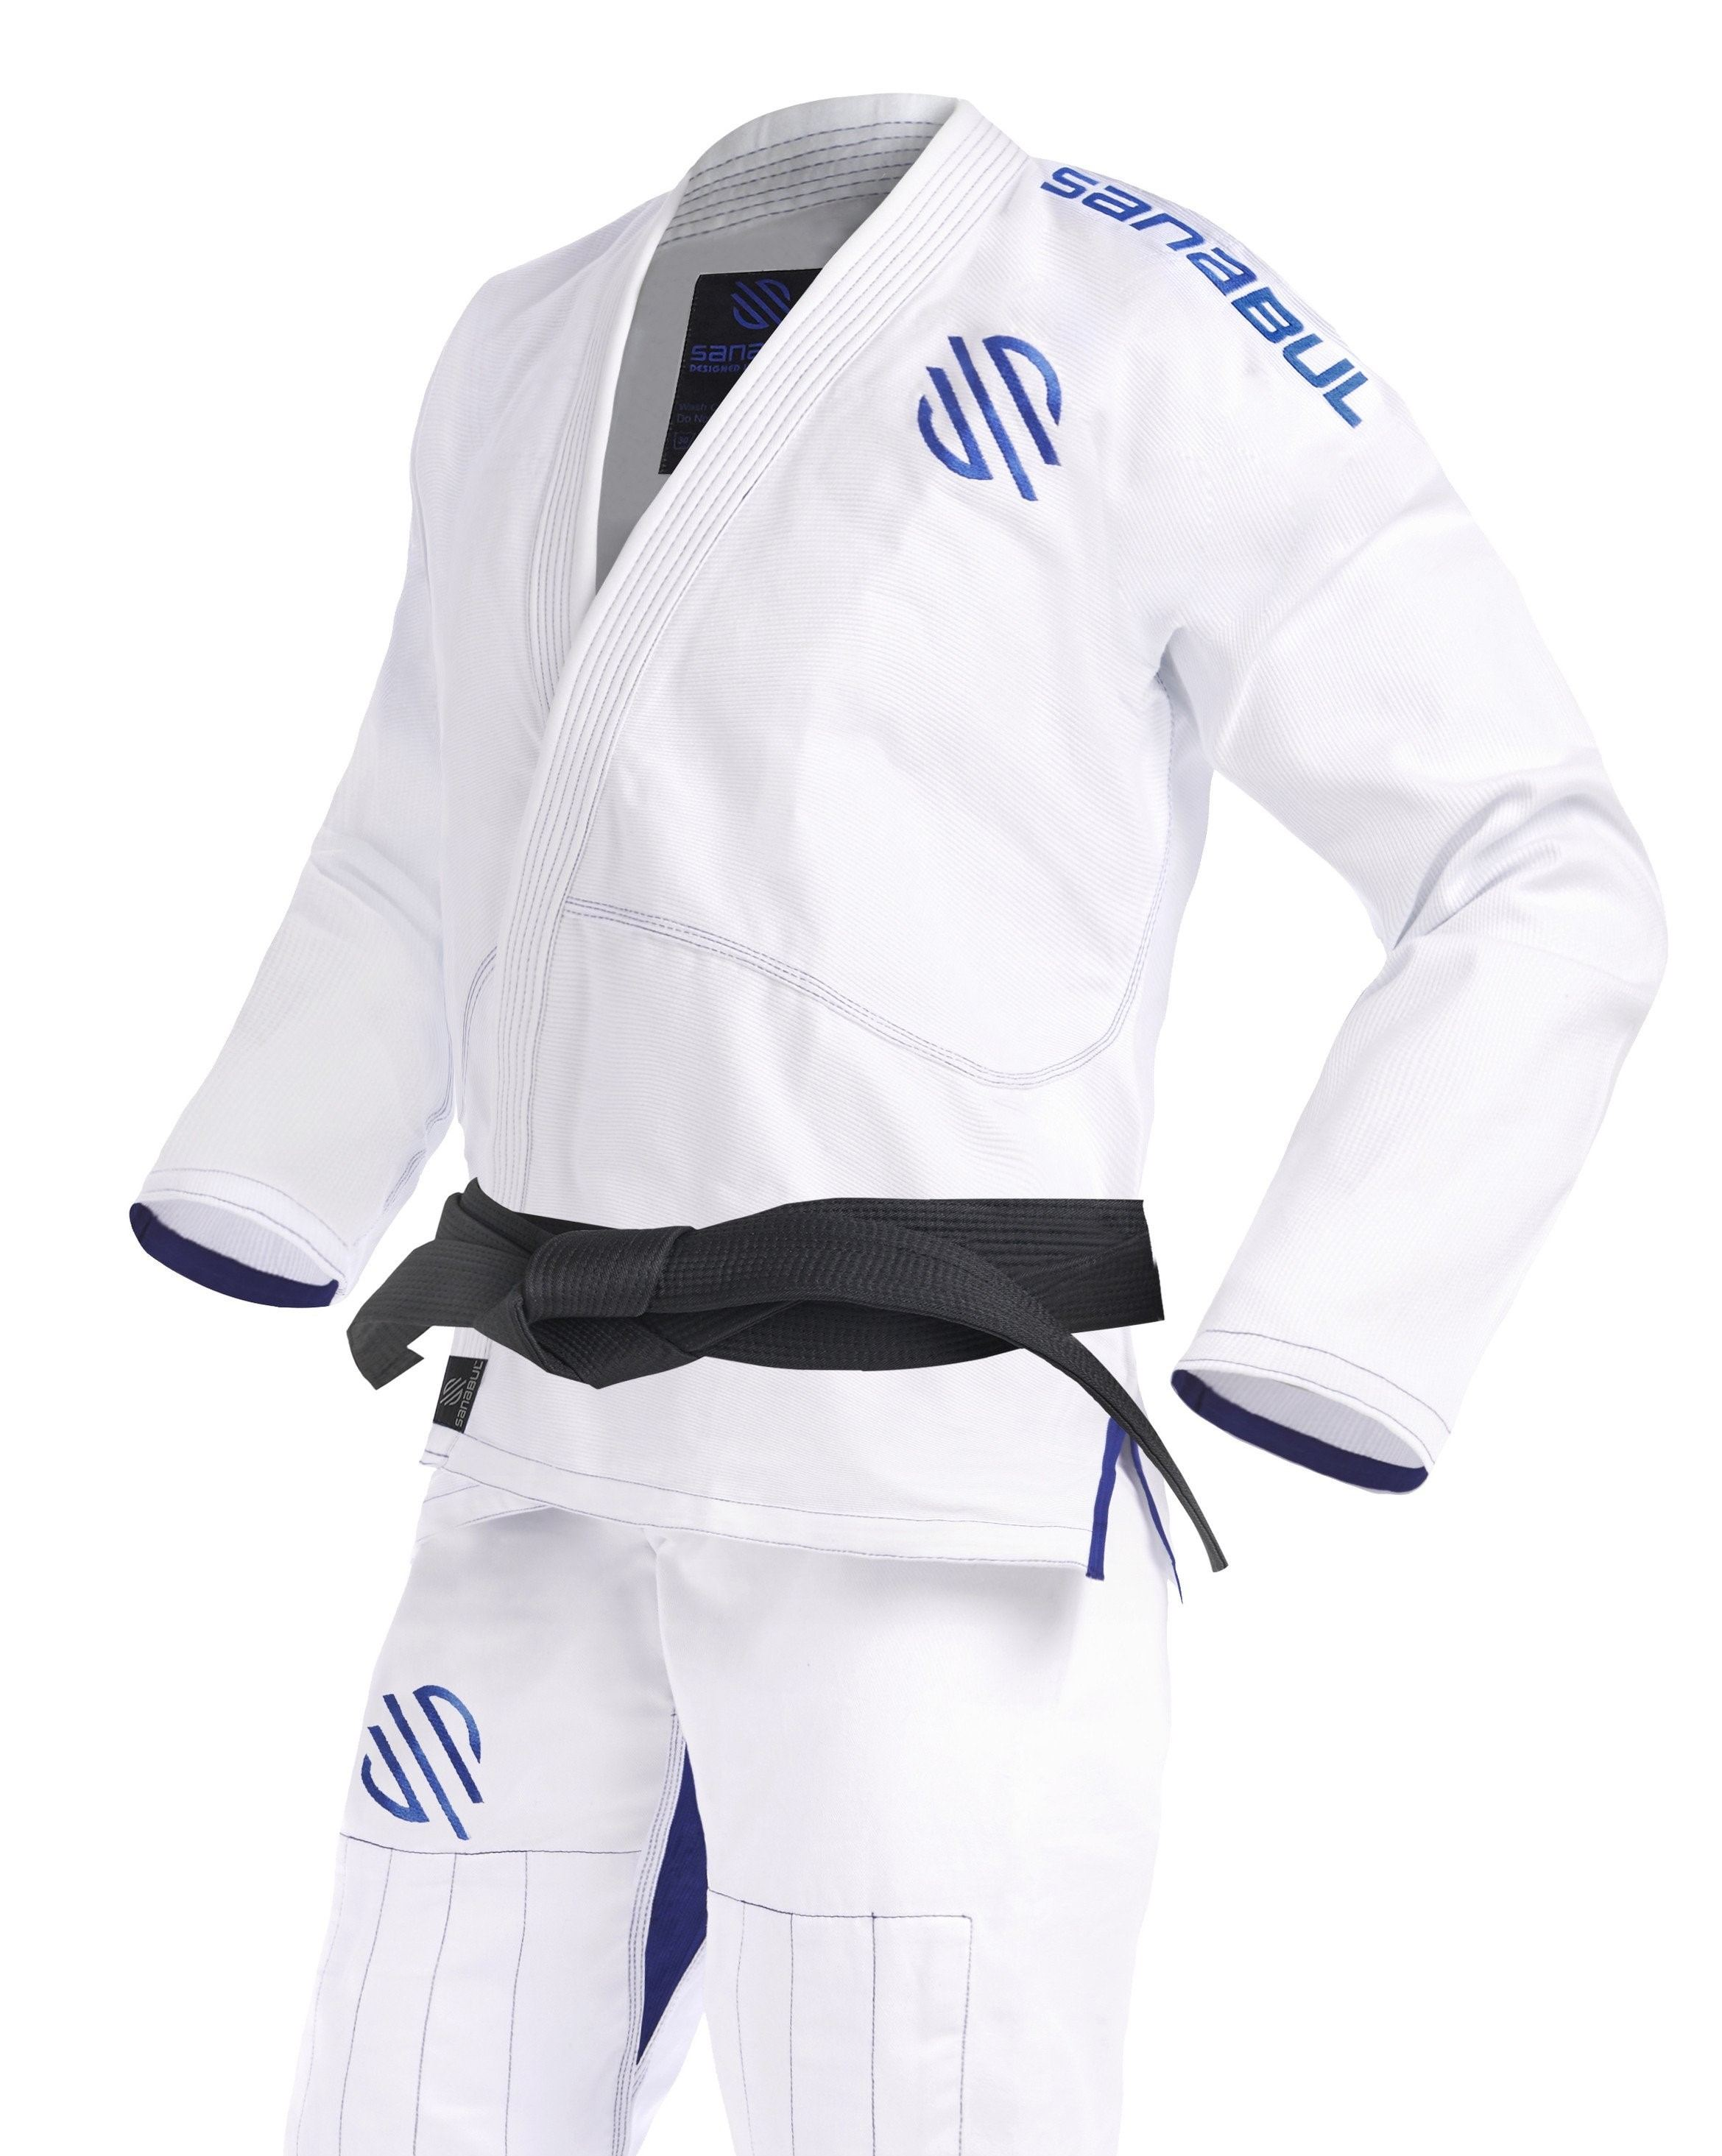 Sanabul Essential v2 Ultralight BJJ Gi